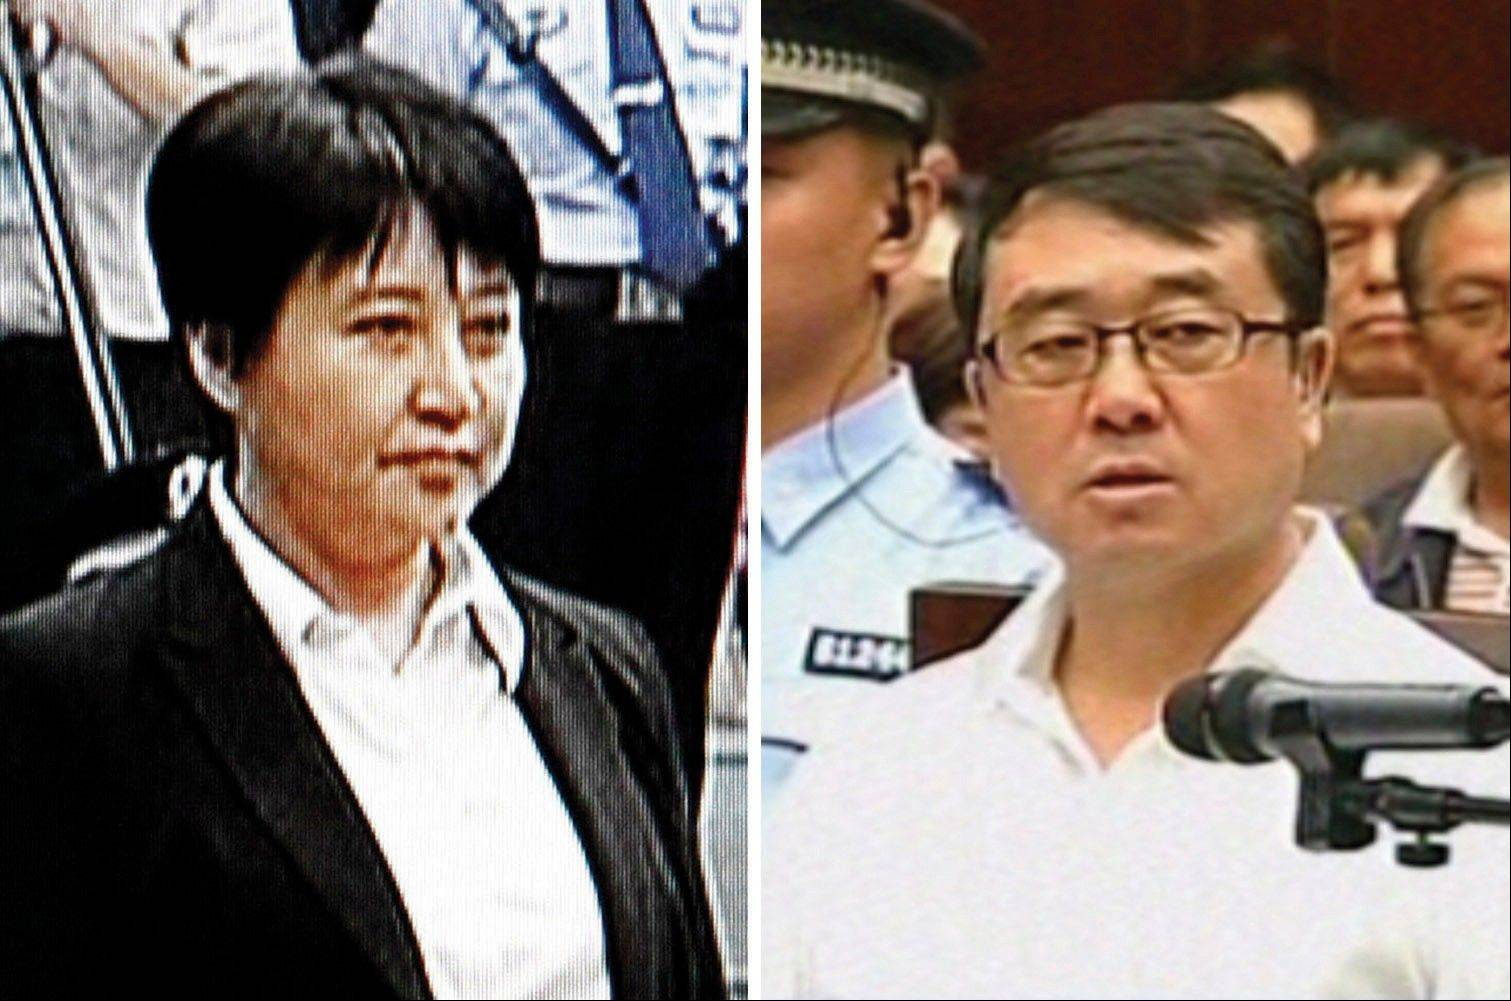 Gu Kailai, left, the wife of disgraced politician Bo Xilai, standing during her trial in the Hefei Intermediate People�s Court in Hefei in eastern China�s Anhui province and former Chongqing police chief Wang Lijun speaking in his trial at the Chengdu Intermediate People�s Court in Chengdu, southwest China�s Sichuan province.